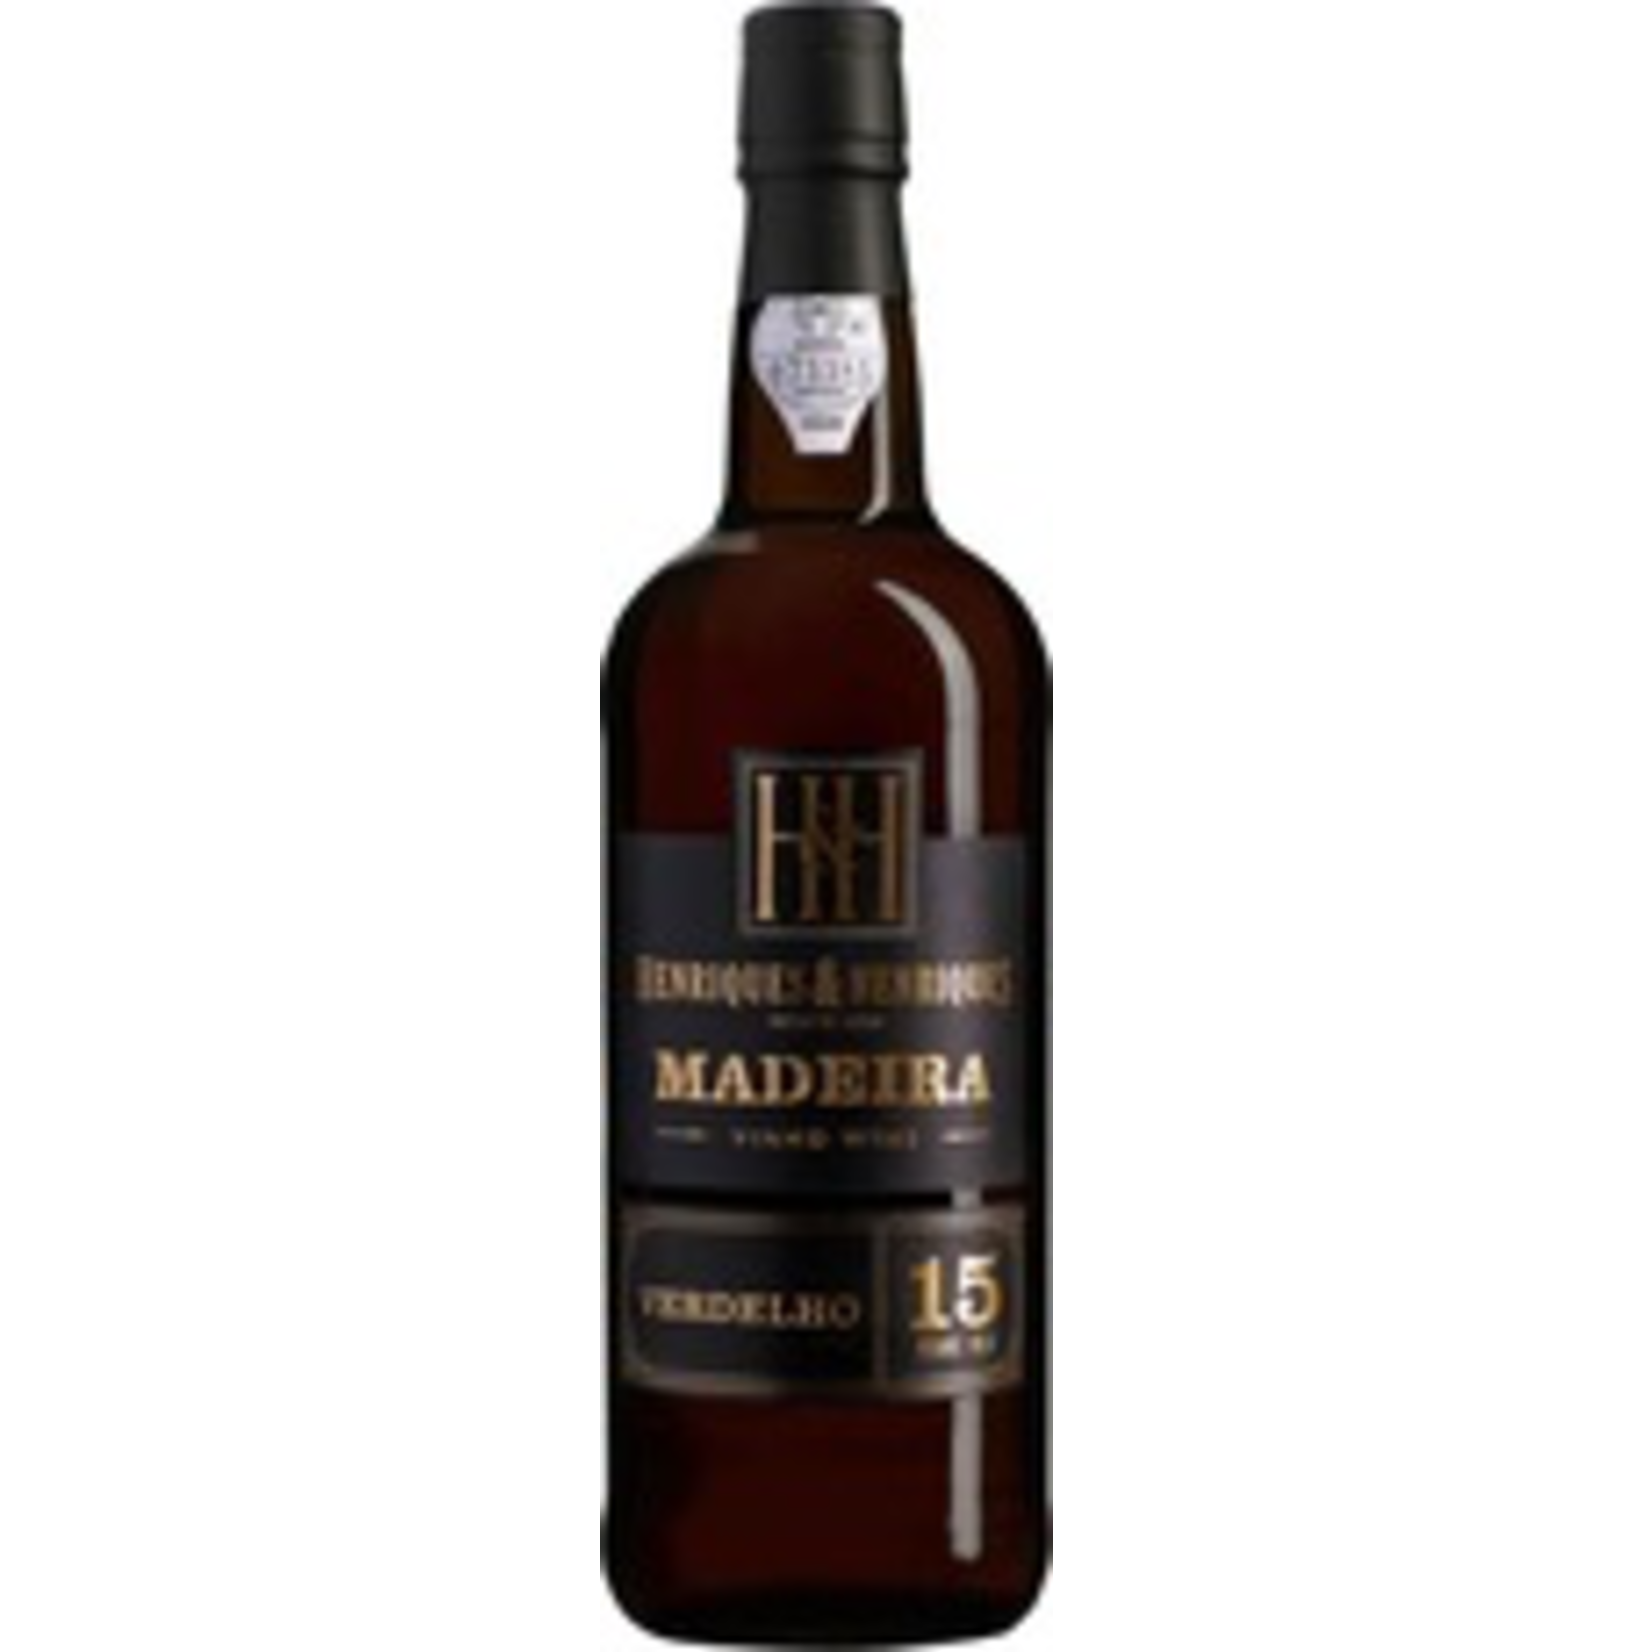 Wine Henriques and Henriques 15 Years Old Verdelho Madeira